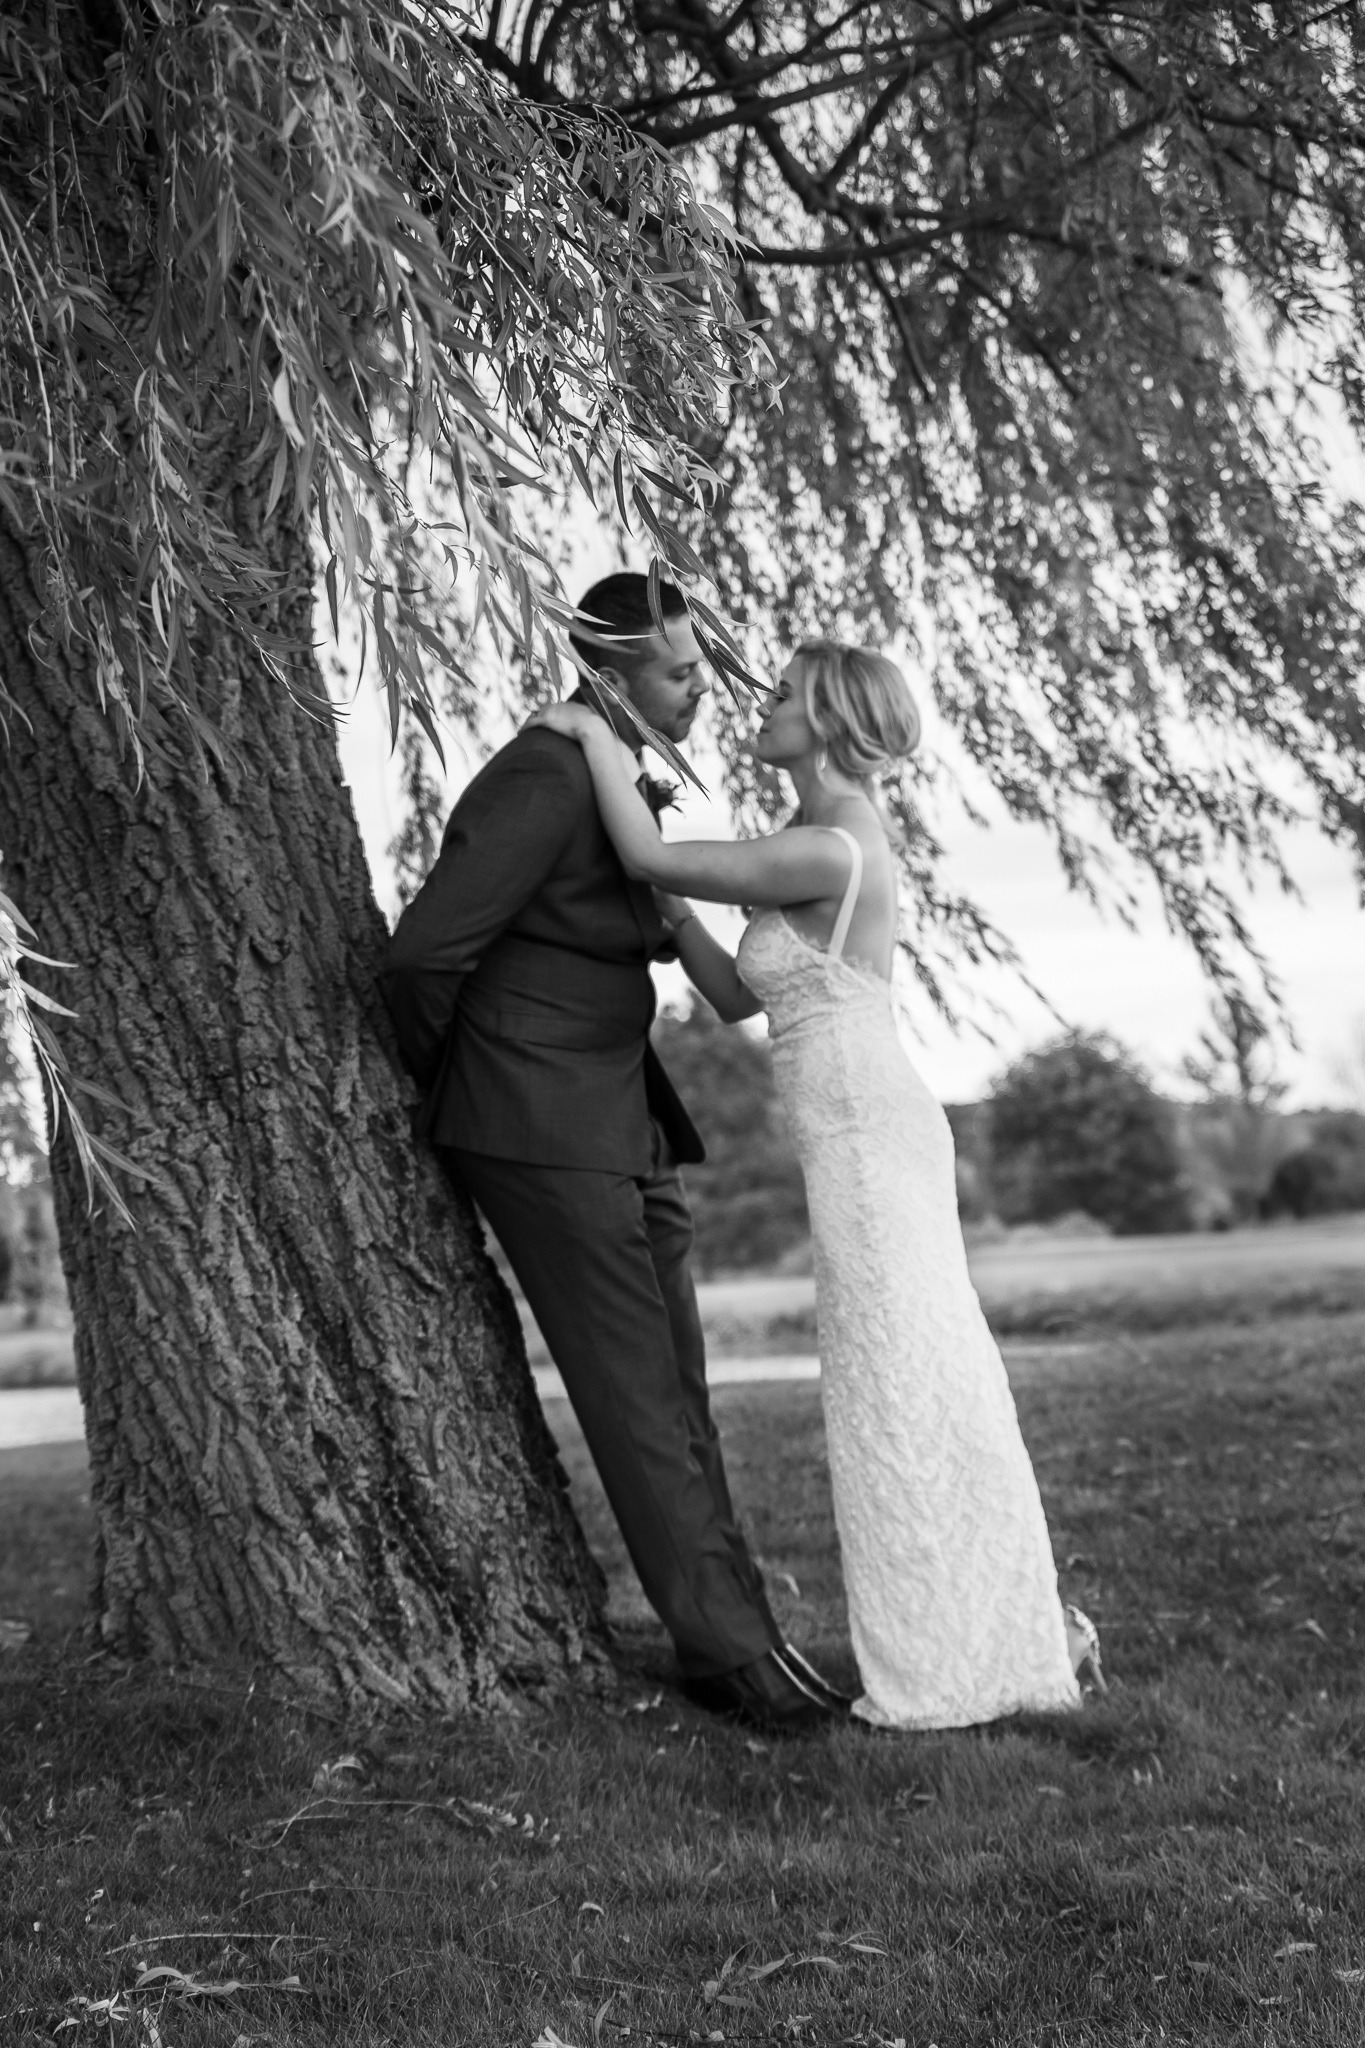 stealing a kiss under the tree